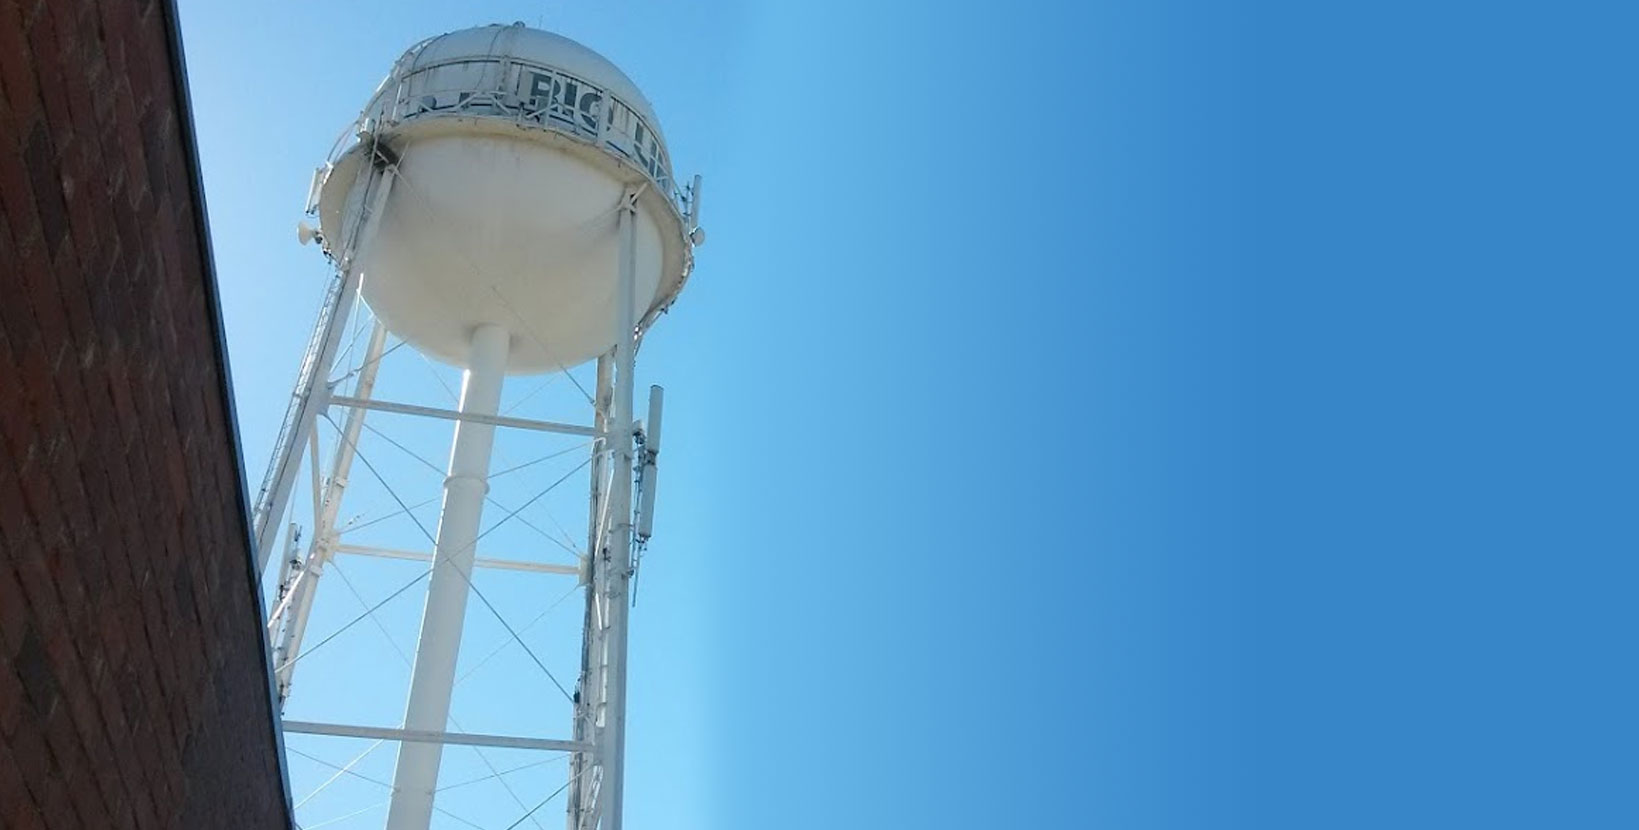 Public Hearing on Proposed Rate Adjustments for RLECWD Water Service